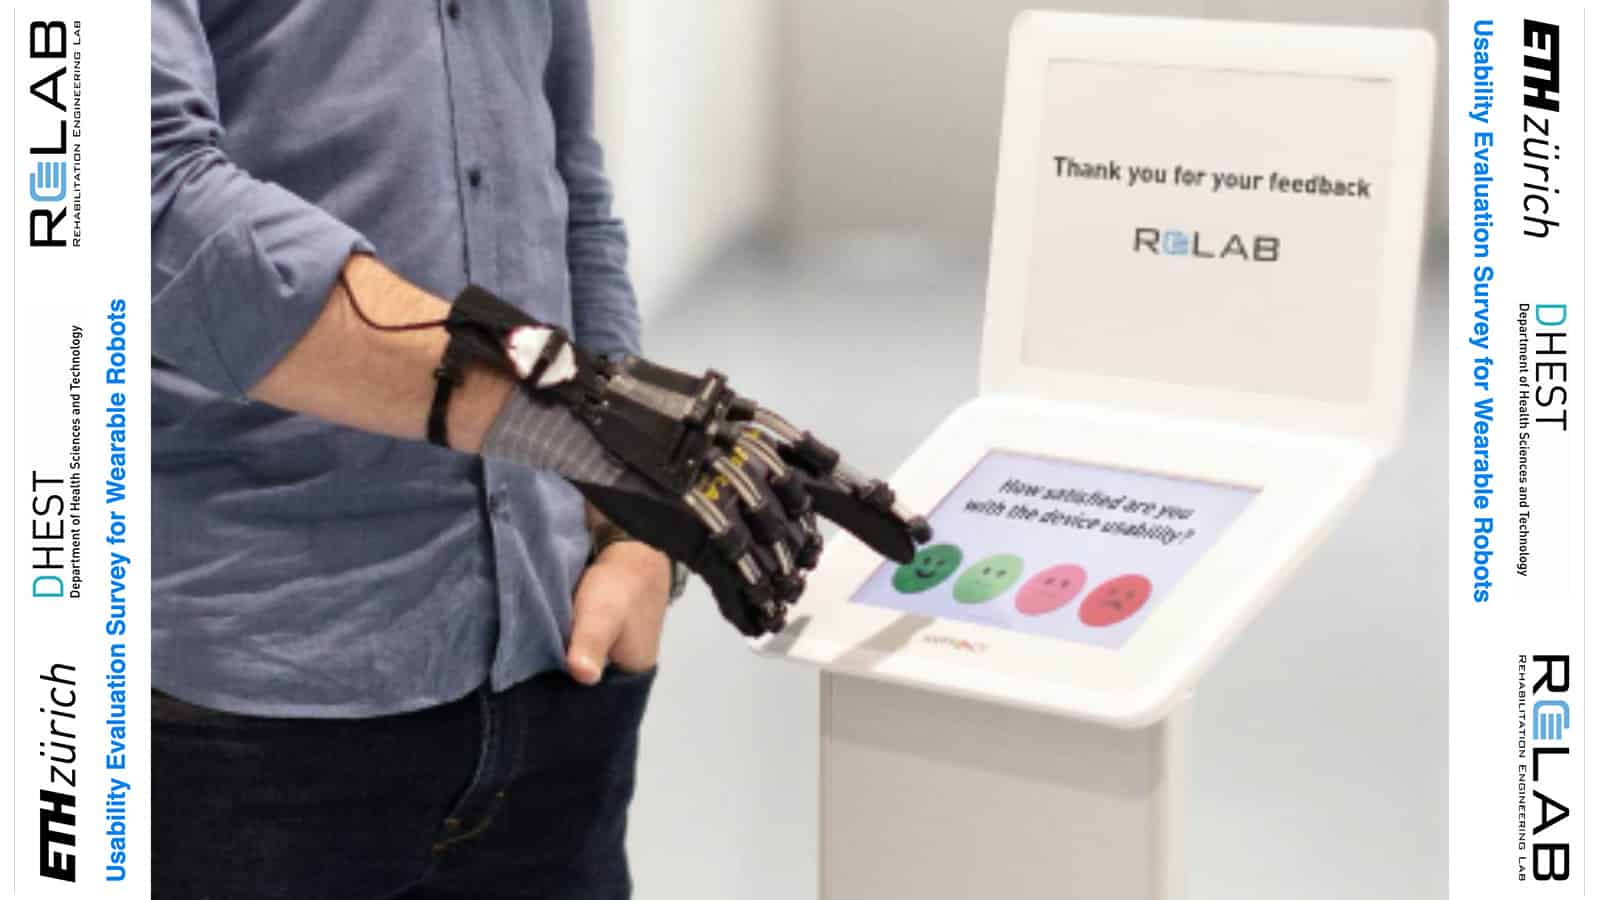 How do you evaluate the usability of wearable robots